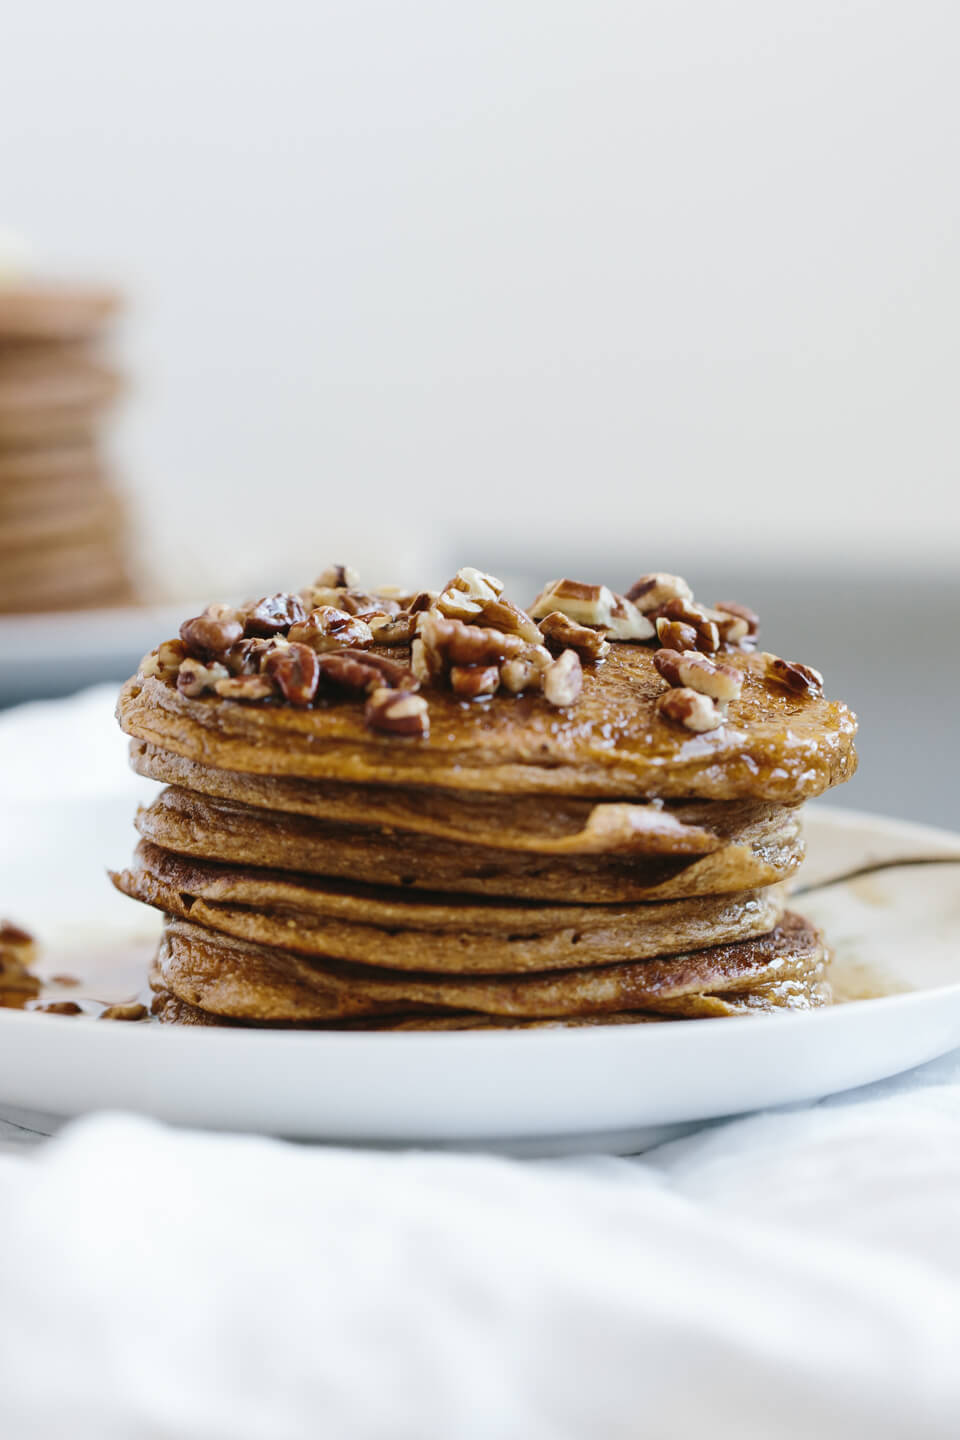 Tall stack of paleo pumpkin pancakes on a plate.